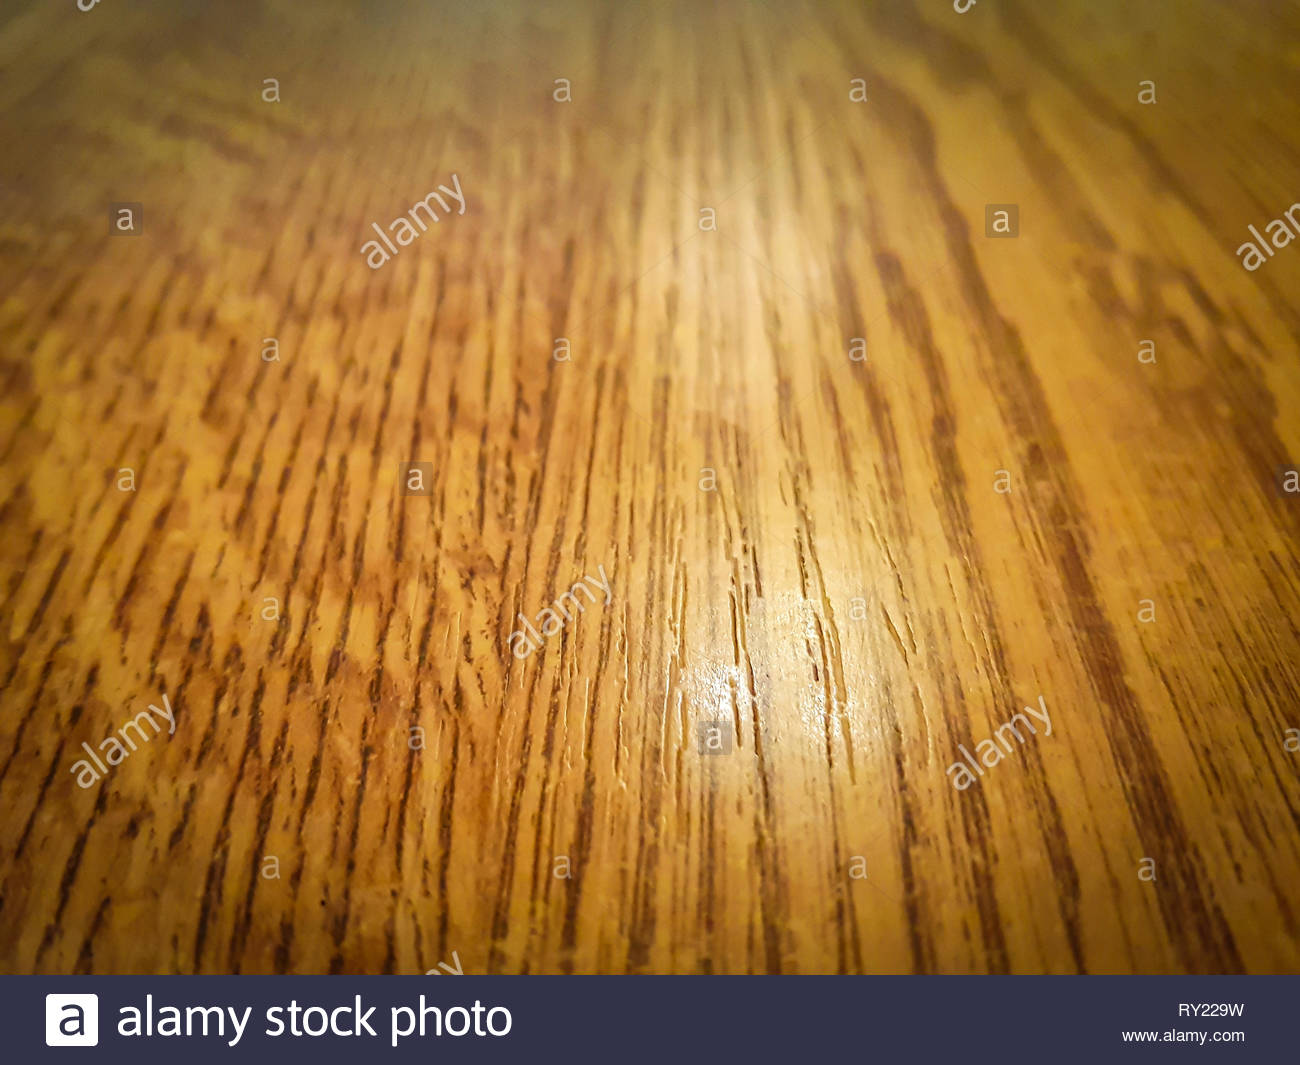 Polished wood floor surface, perspective view - abstract textured background - Stock Image